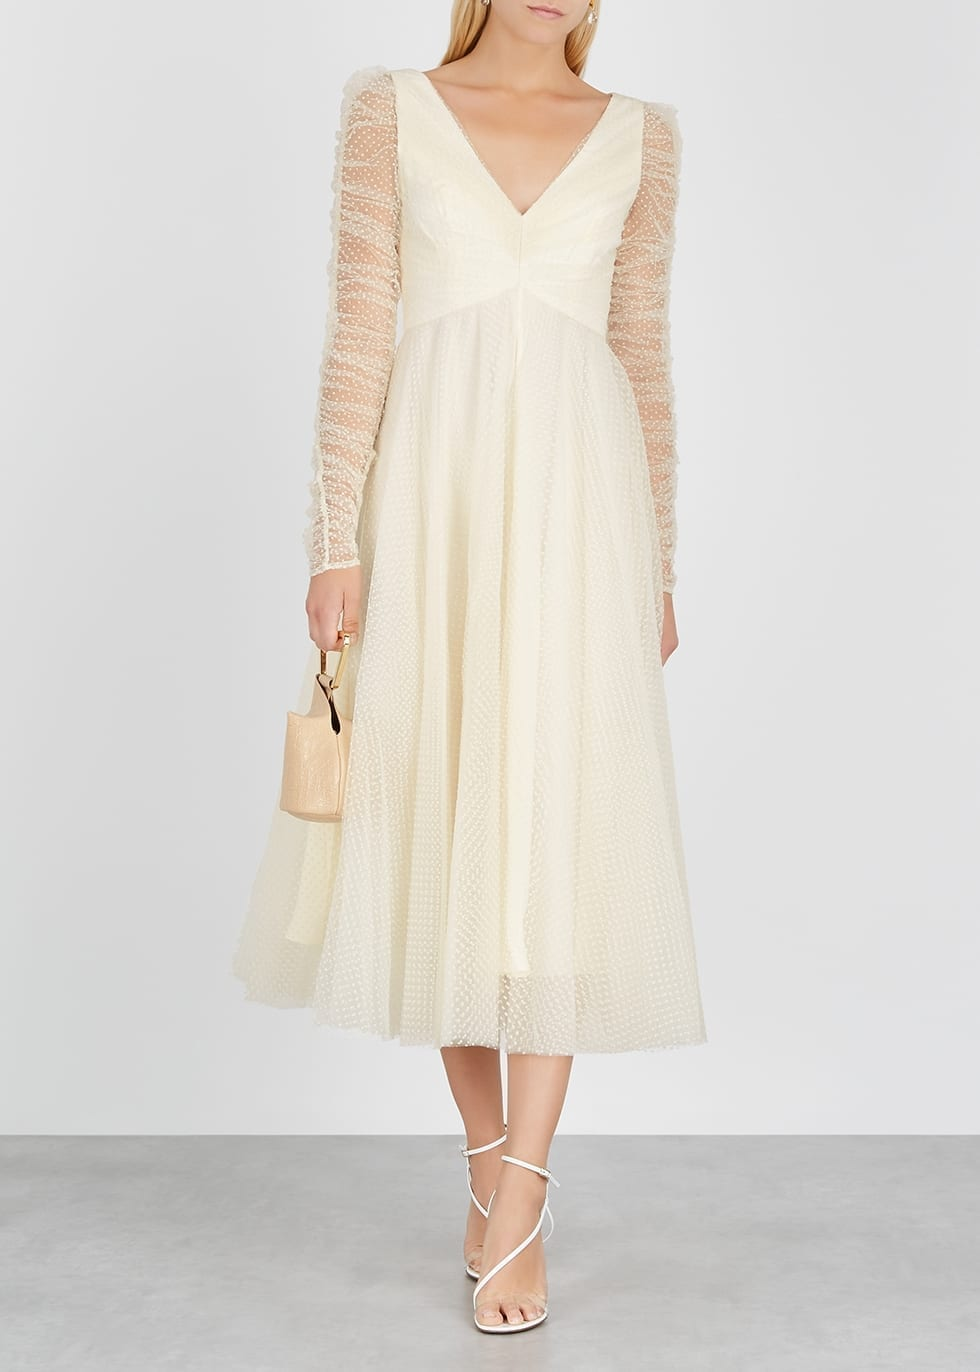 ZIMMERMANN Espionage Ivory Polka Dot Tulle Dress